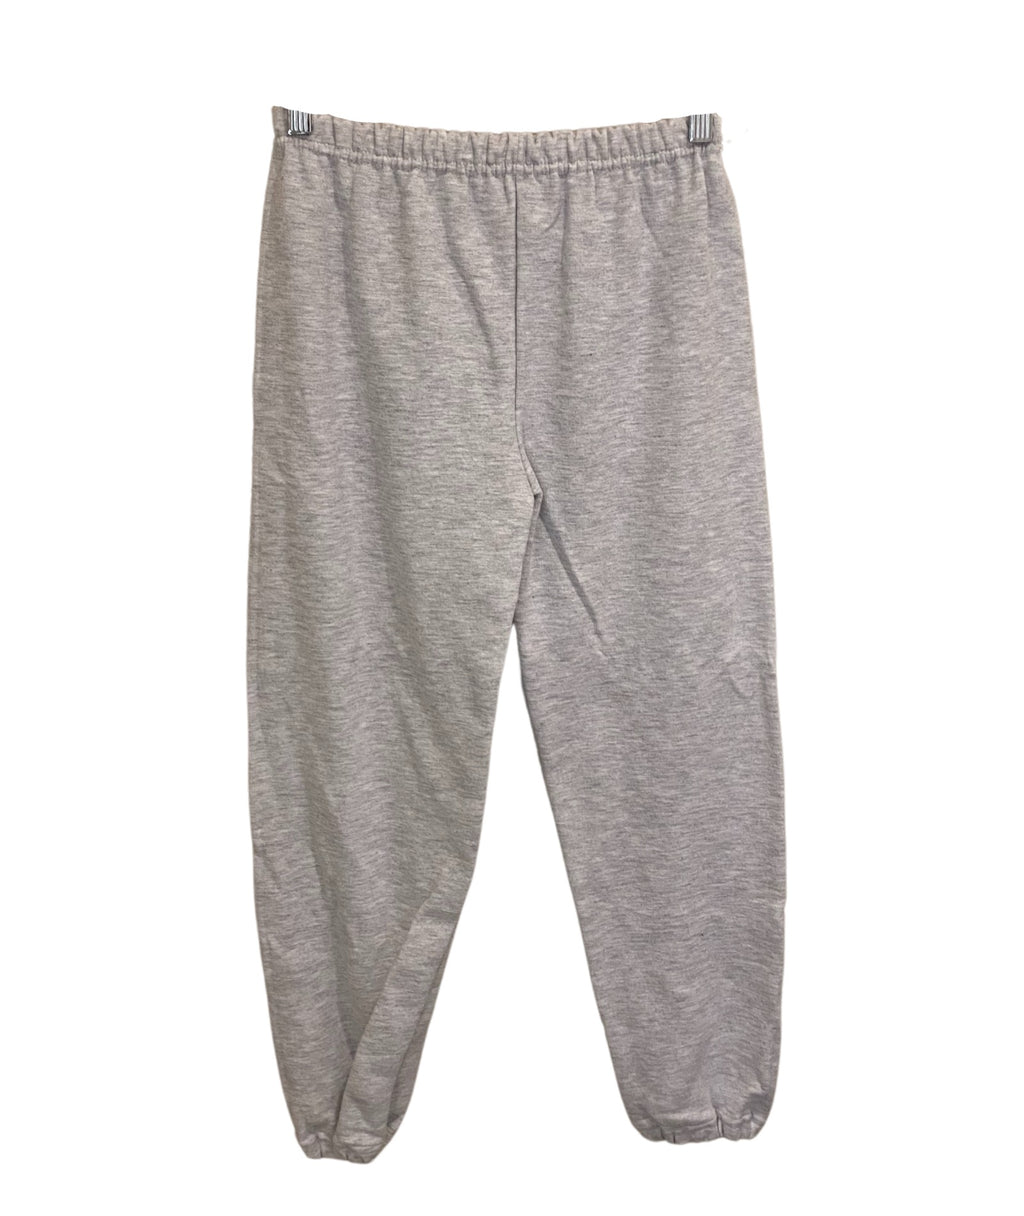 Gildan Distressed Varsity Sweatpants Light Grey